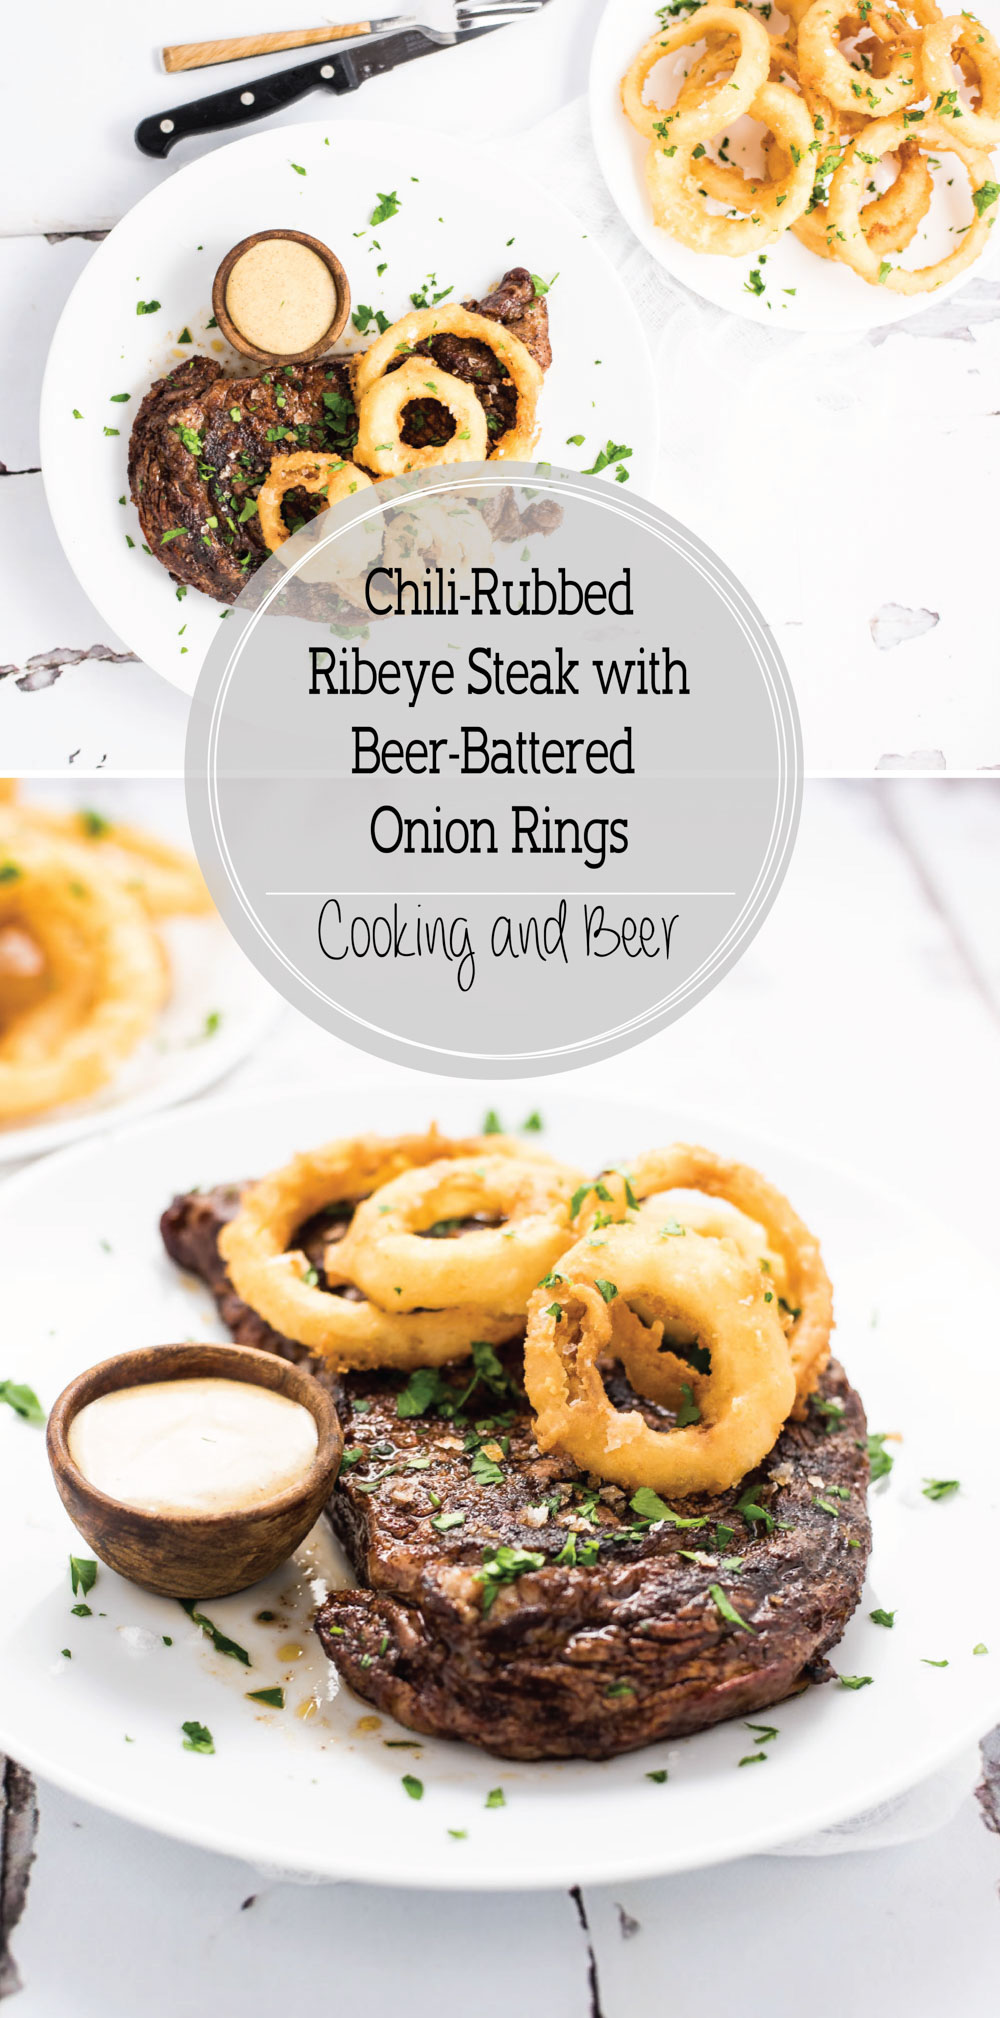 Create a meal worthy of a steakhouse with this chili-rubbed ribeye Steak with beer-battered onion rings!